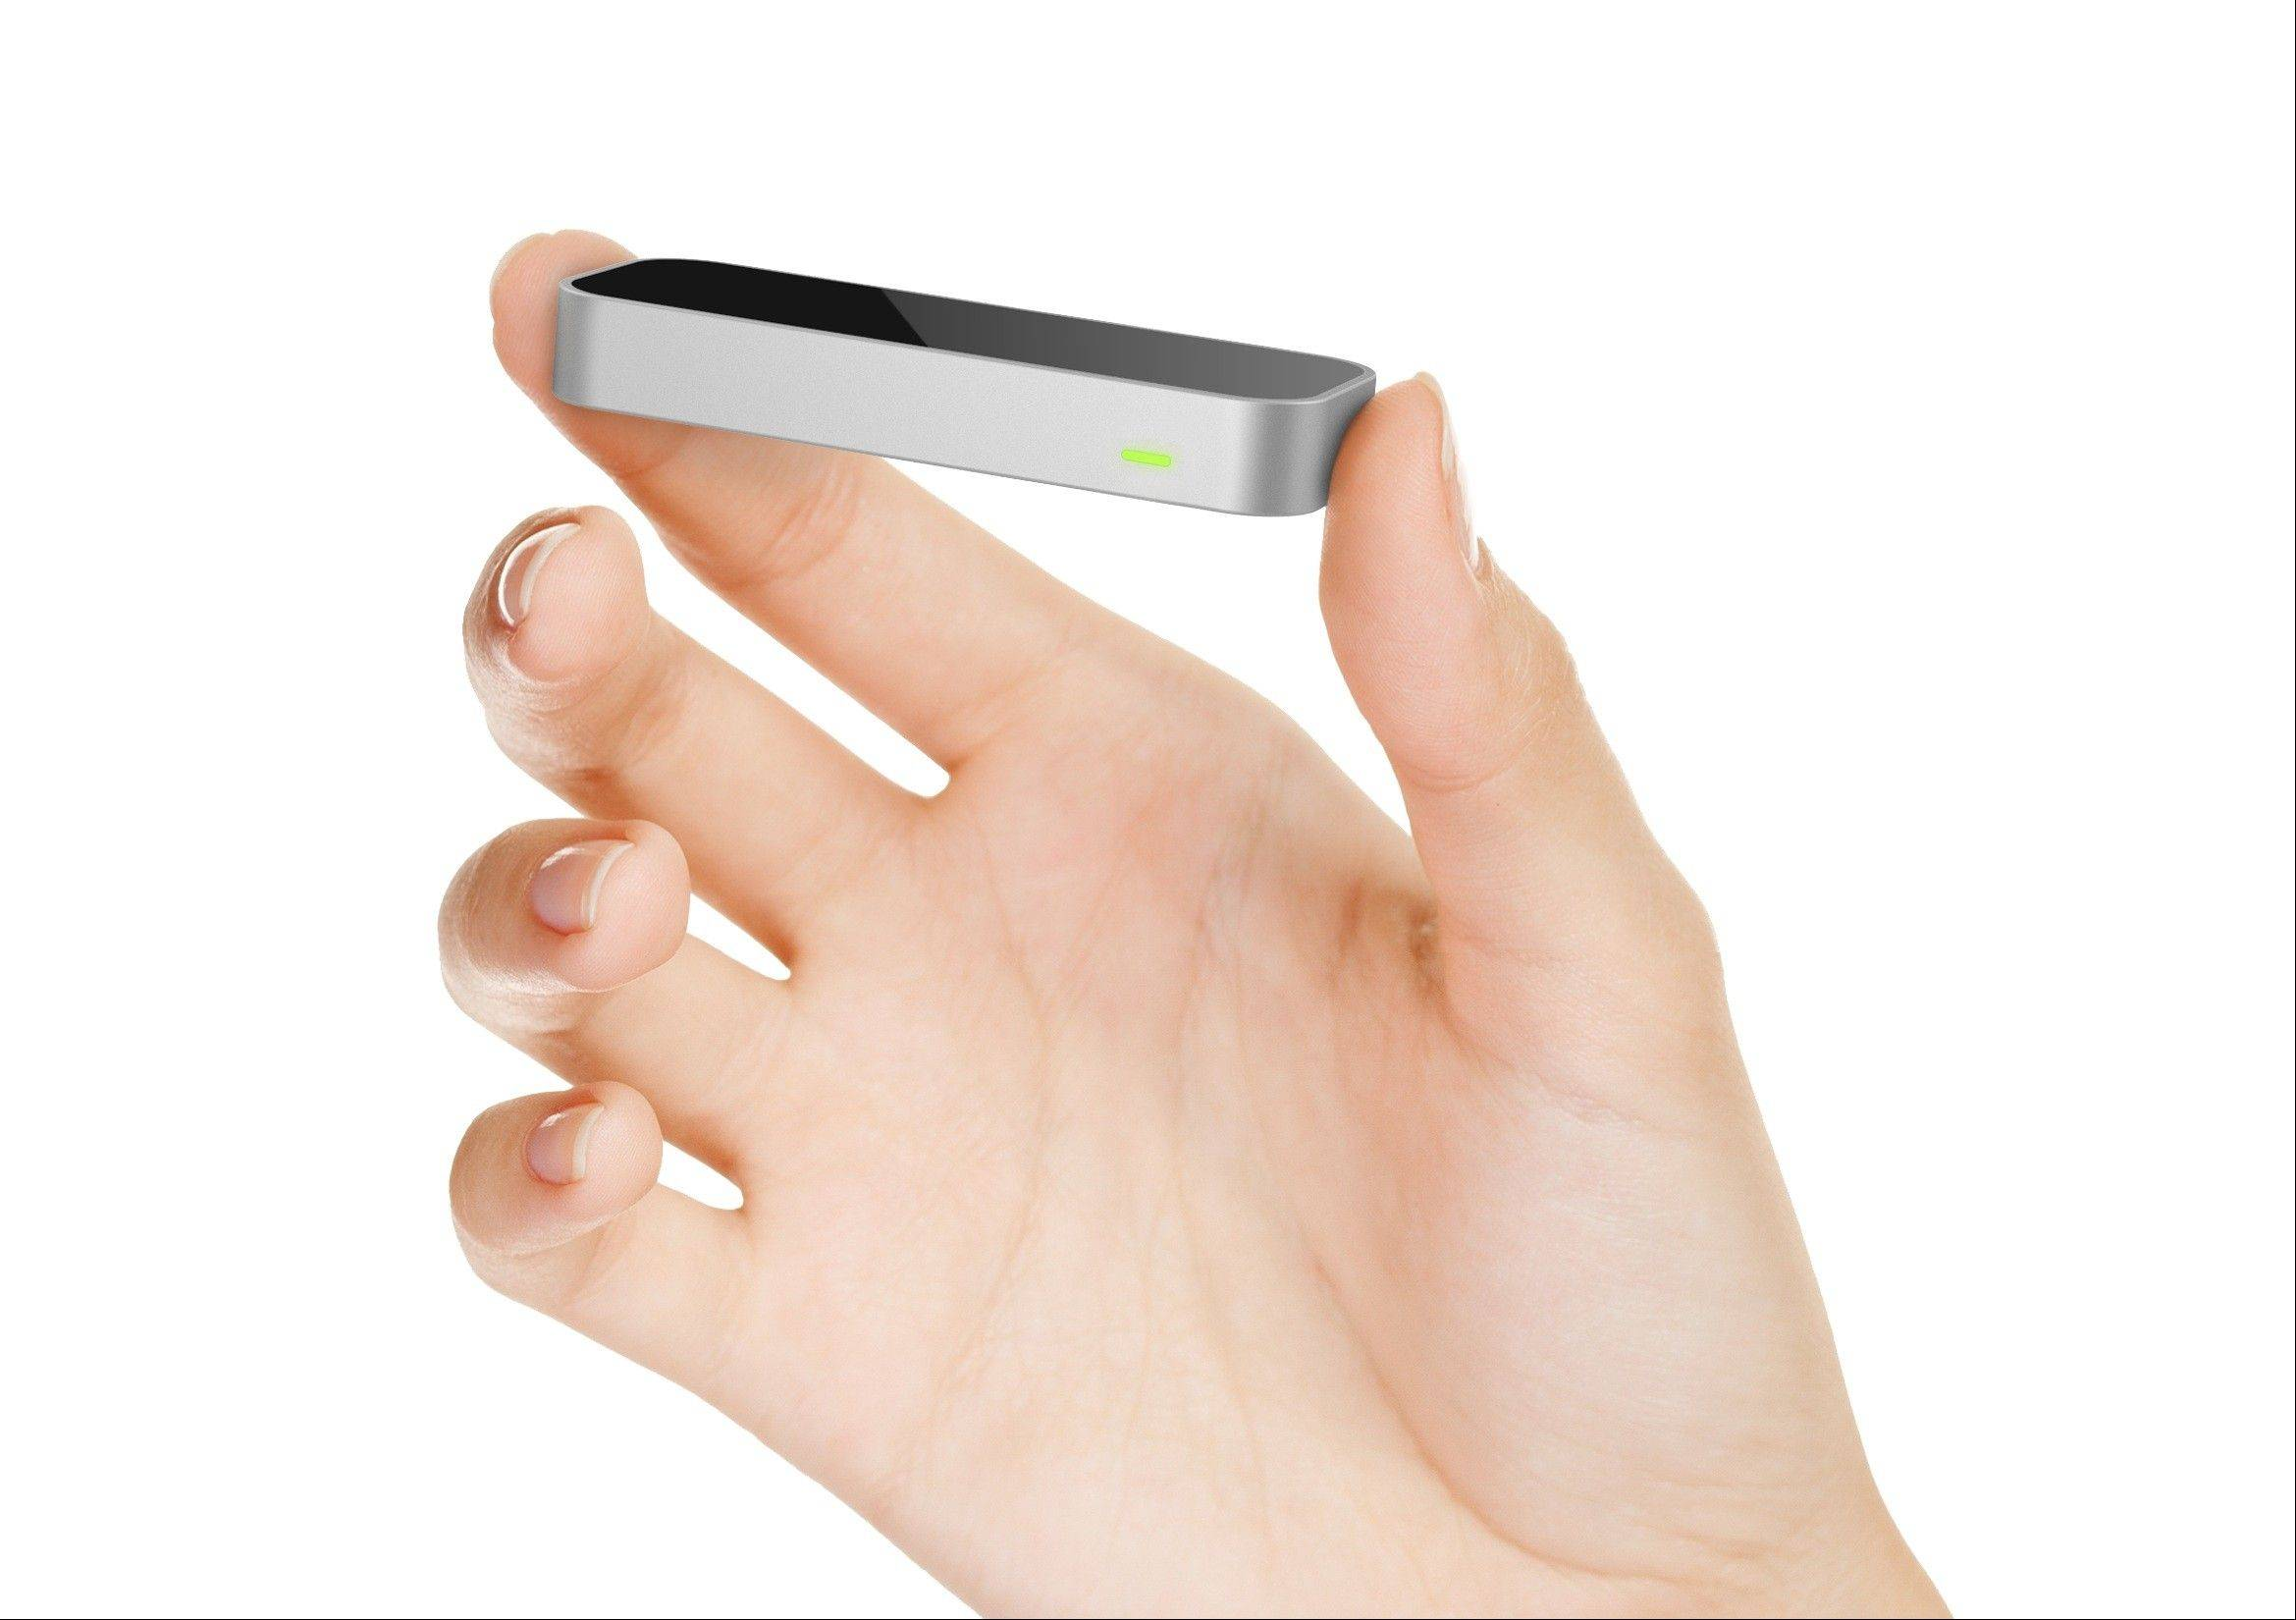 The Leap Motion computer controller is designed for people to use while seated and moving their hands just a few inches from the screens of laptops and personal computers.